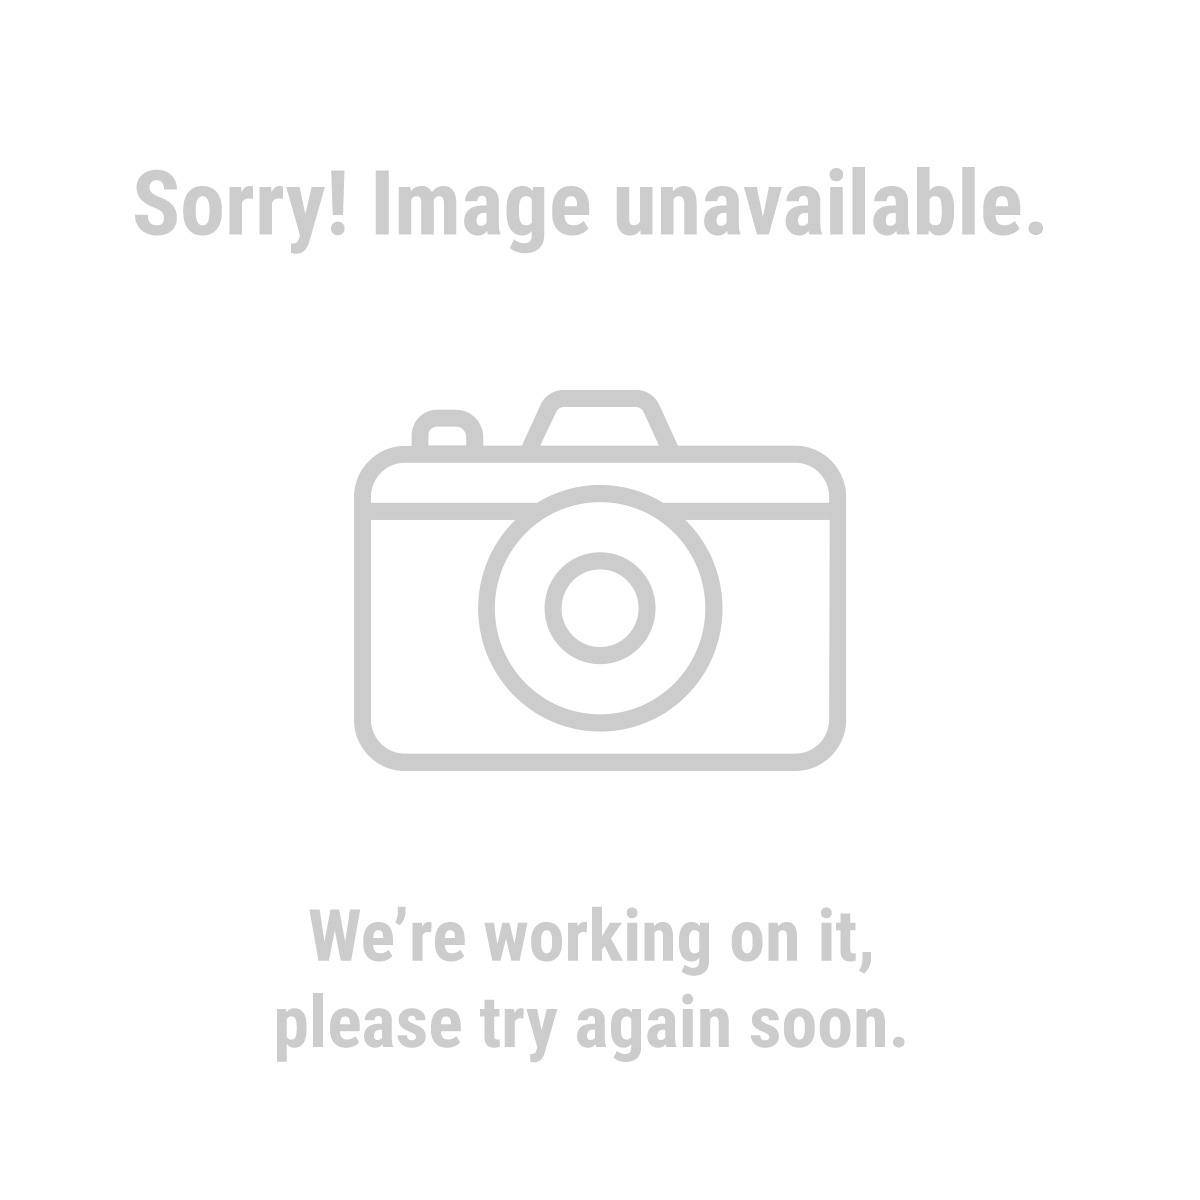 Badland Winches 61257 3500 lb. ATV/Utility Electric Winch with Automatic Load-Holding Brake